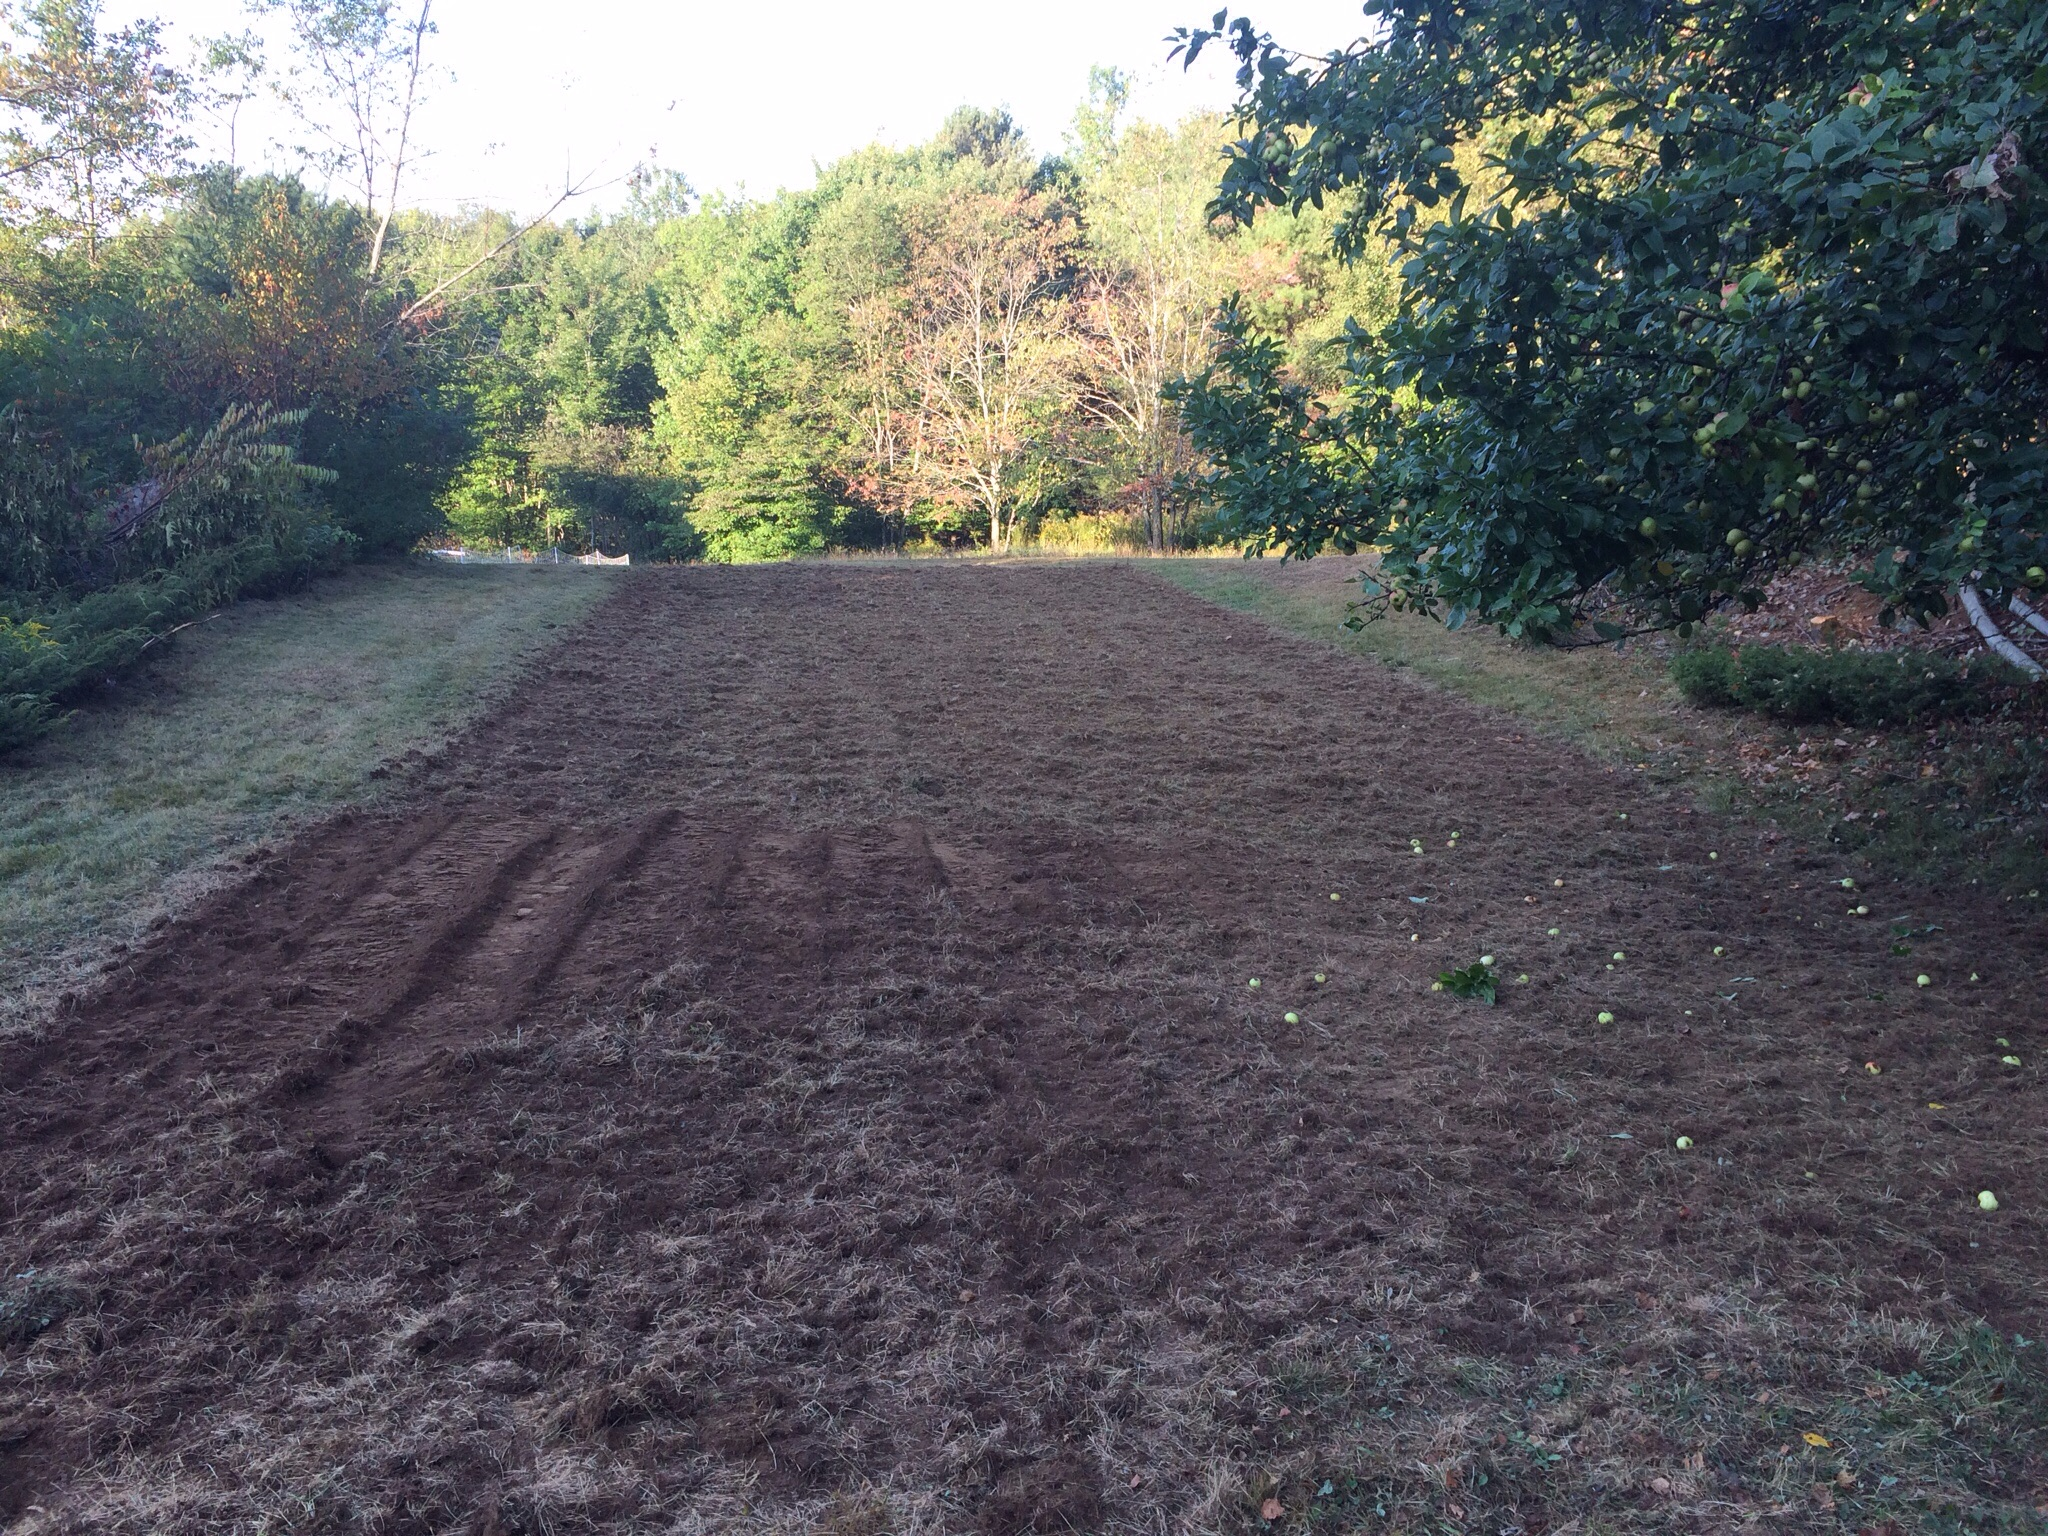 Thanks to our friend Joel of Wild Miller Gardens here in Palermo we have a new tilled garden plot for next summer back behind the barn. It's about 20x70. We'll use this for growing more vegetables in the future as well as larger plantings of perennial herbs like calendula and comfrey for Ridge Pond Herbals products. The apple on the right is the third mature apple we inherited with the farm. This one is most definitely a cider apple as the taste on its own is extremely tannic.